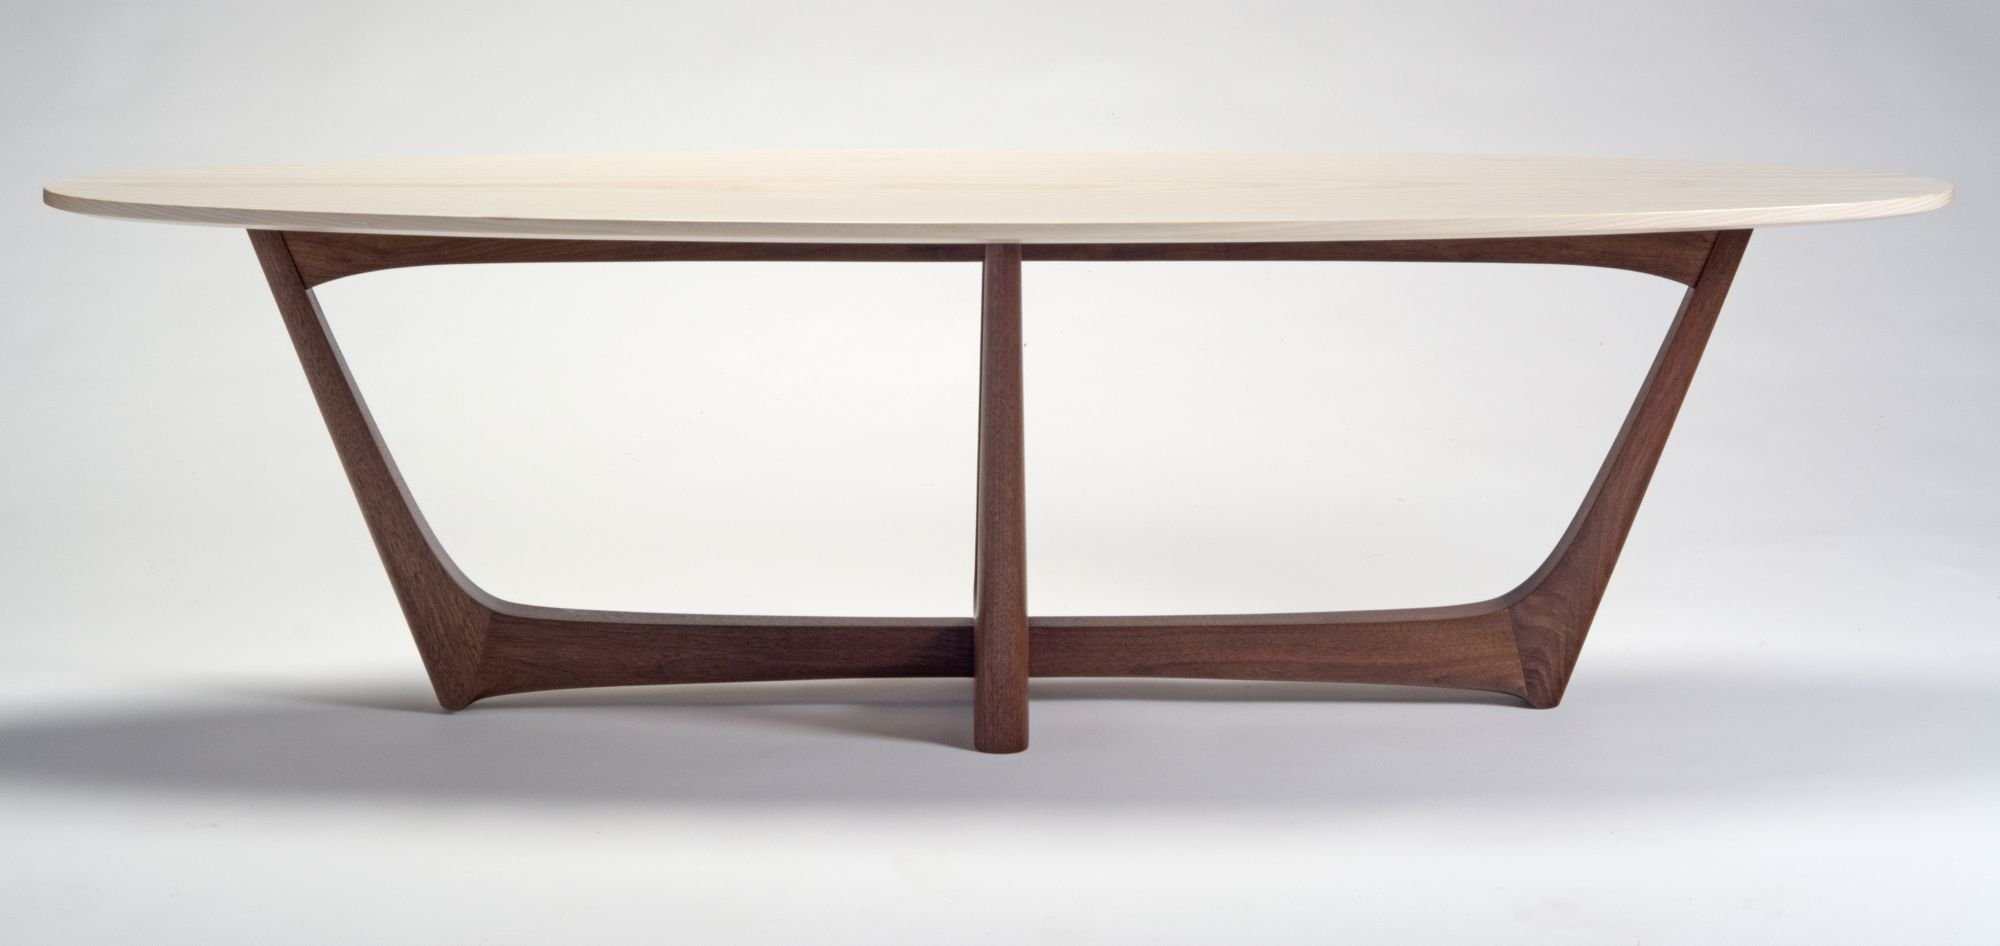 Townsend Wood By Eben Blaney Wood Coffee Table Artful Home